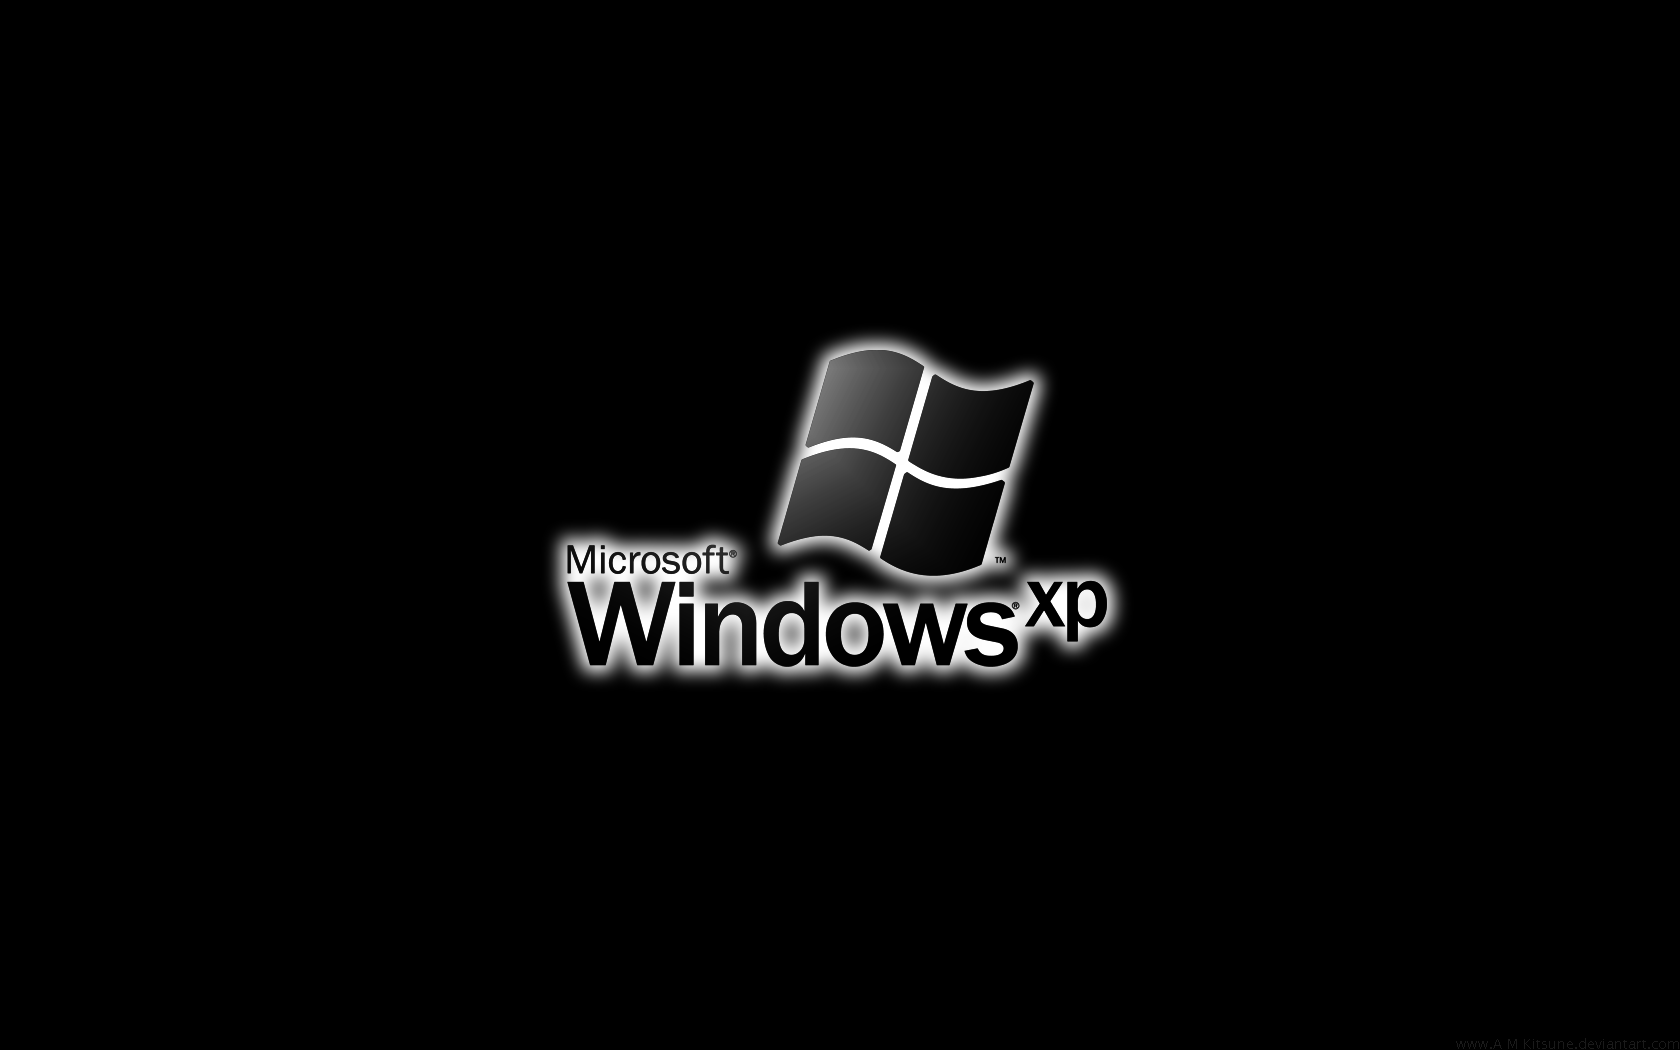 Windows Wallpaper Just For You Forever Windows Xp